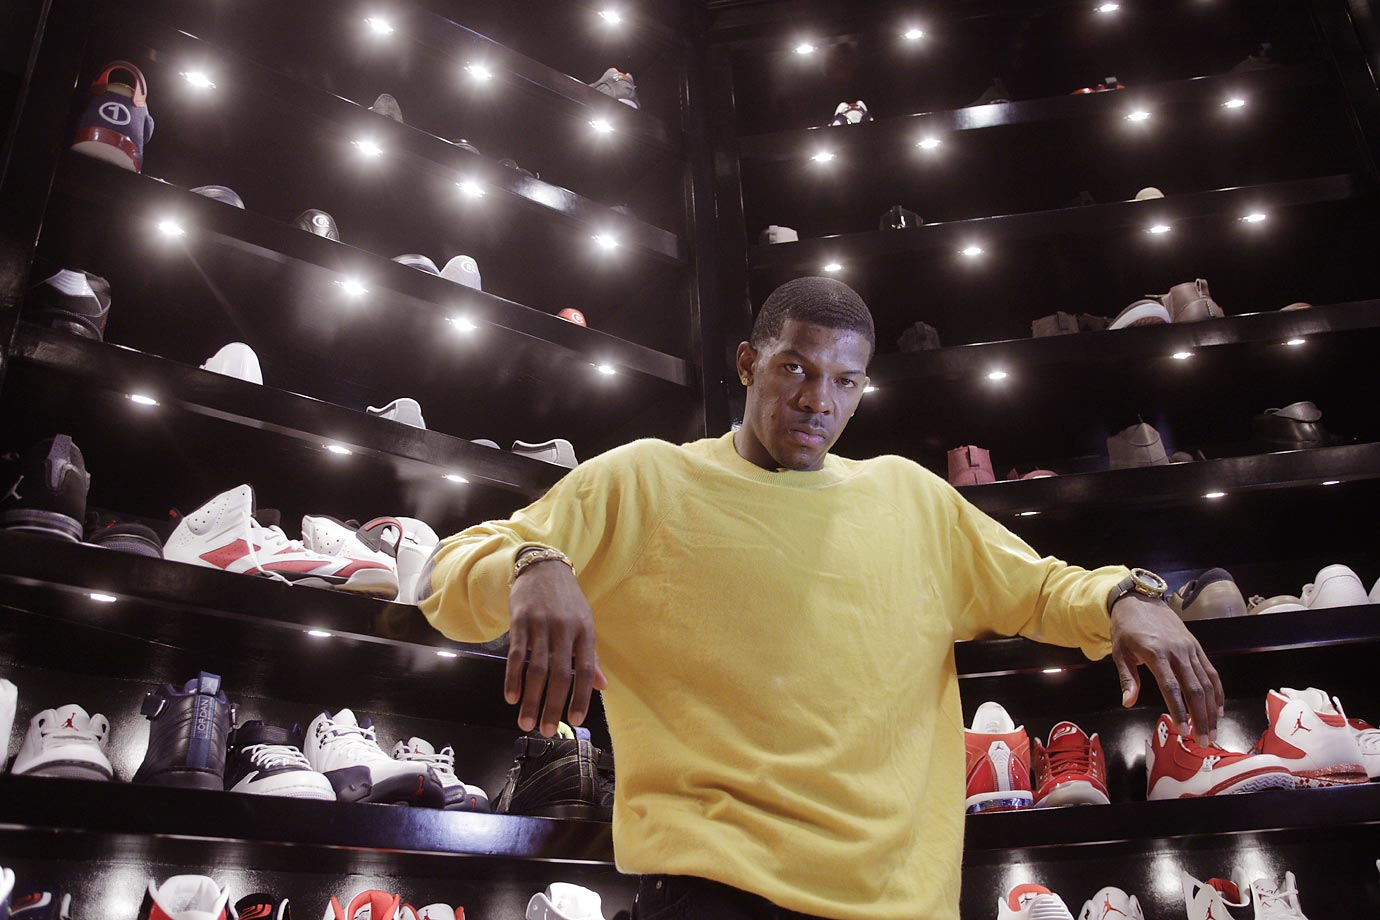 Back in 2012, SI photographed Joe Johnson's massive sneaker collection at his house. Check out some of the shoes from the Nets star's closet.